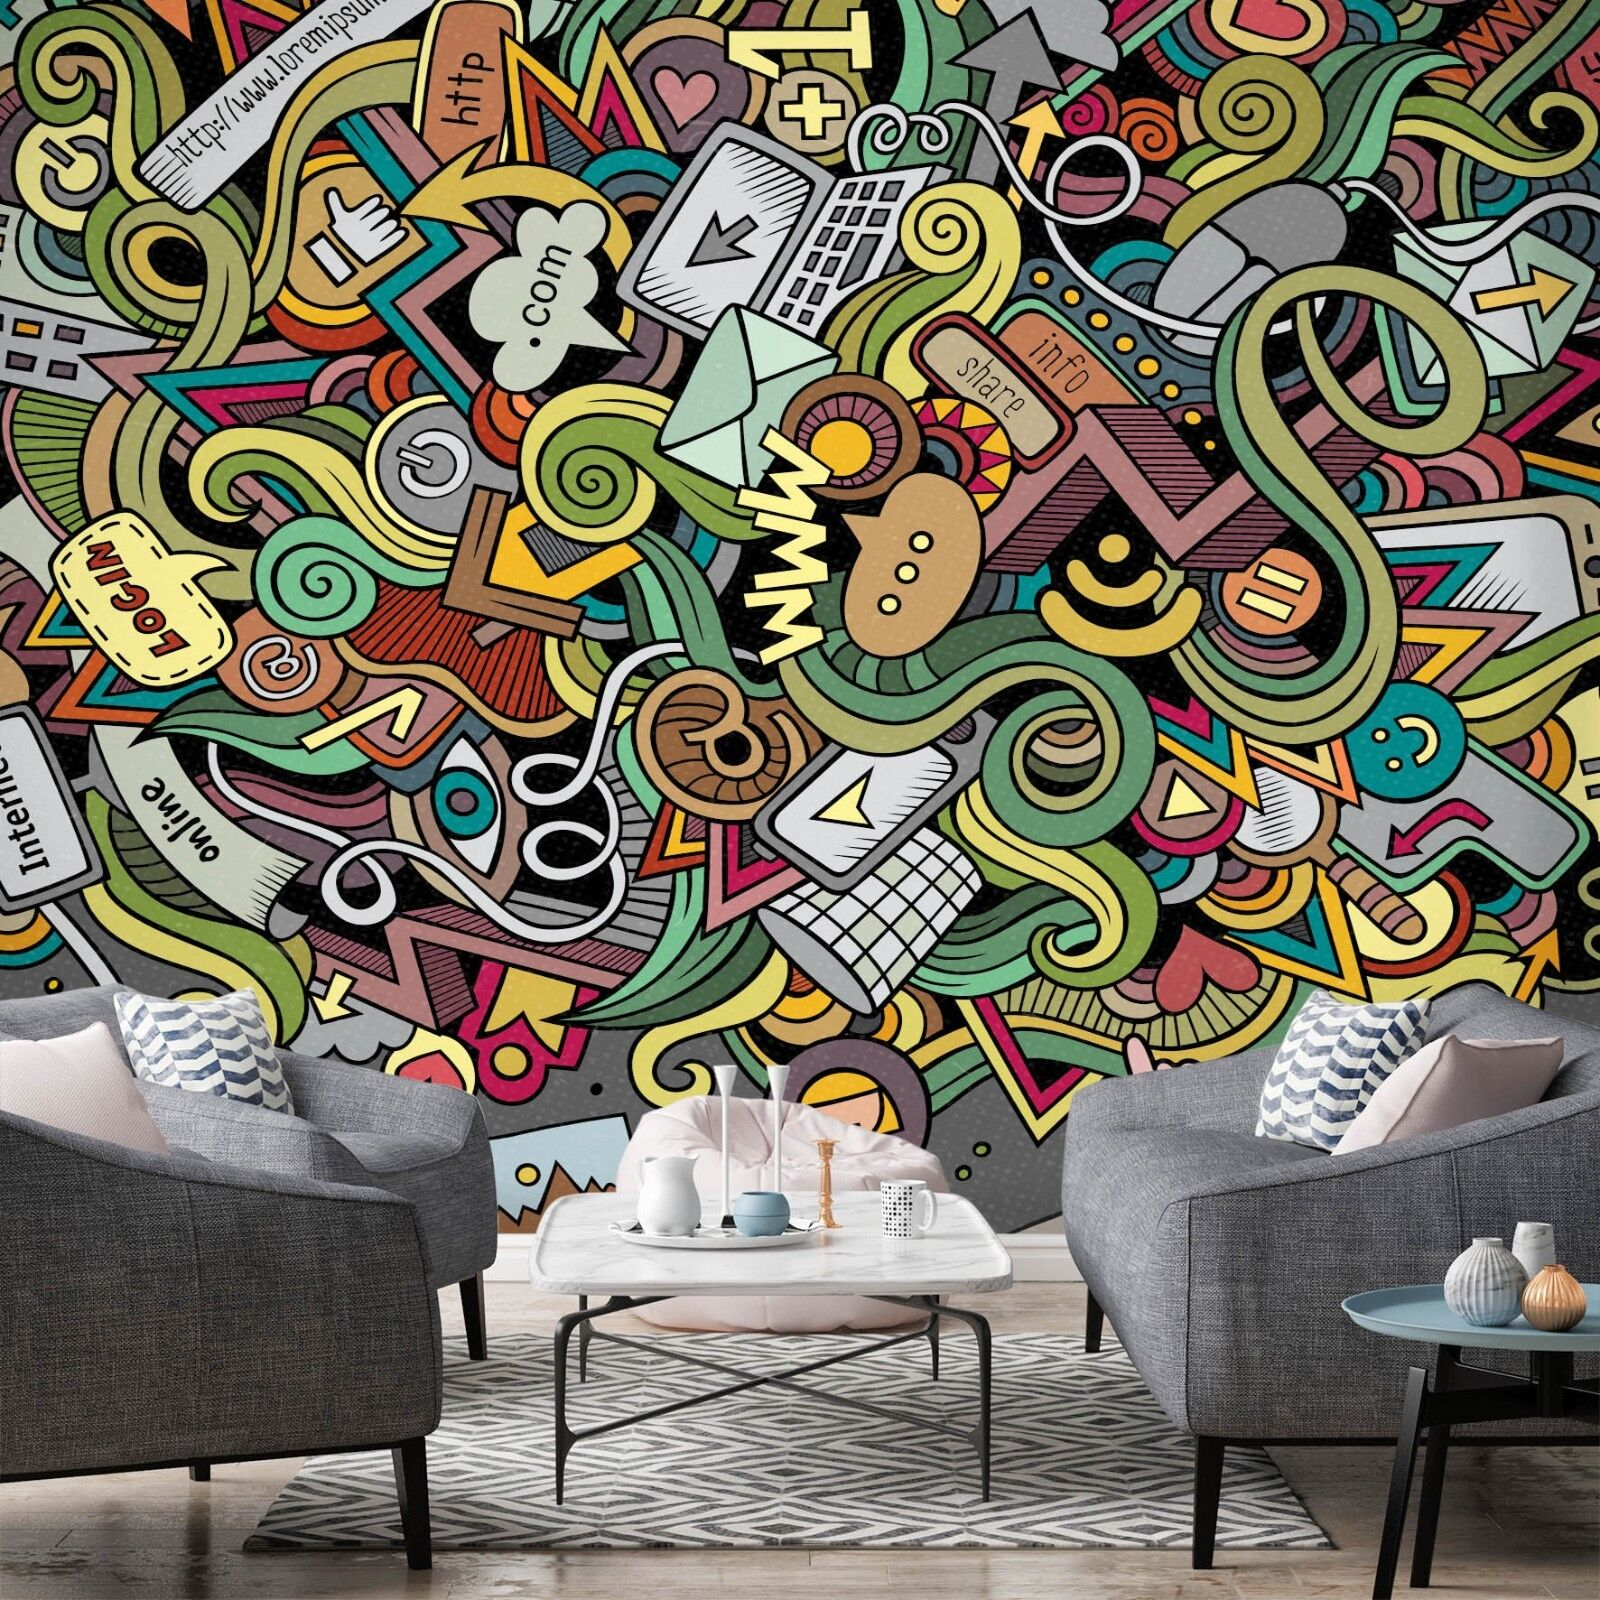 3D Fashion Pattern 785 Wallpaper Mural Paper Wall Print Murals UK Lemon